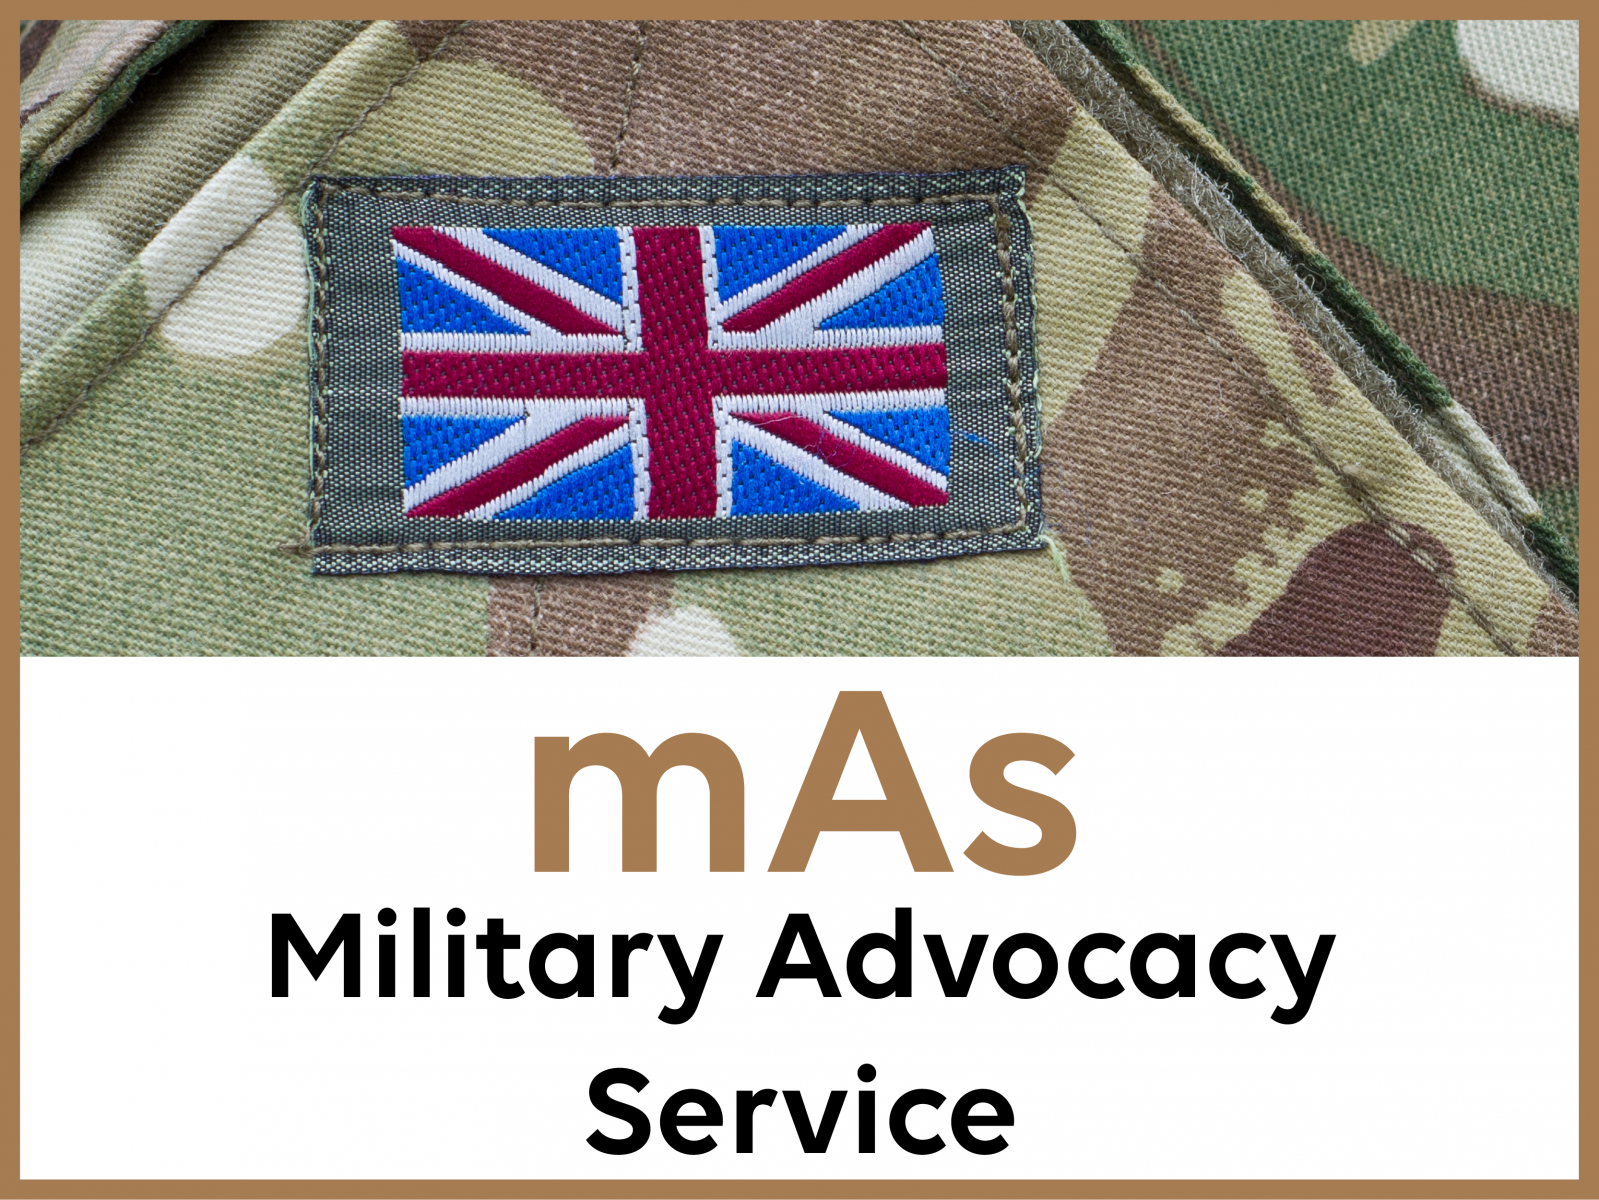 Help for Veterans and Their Families